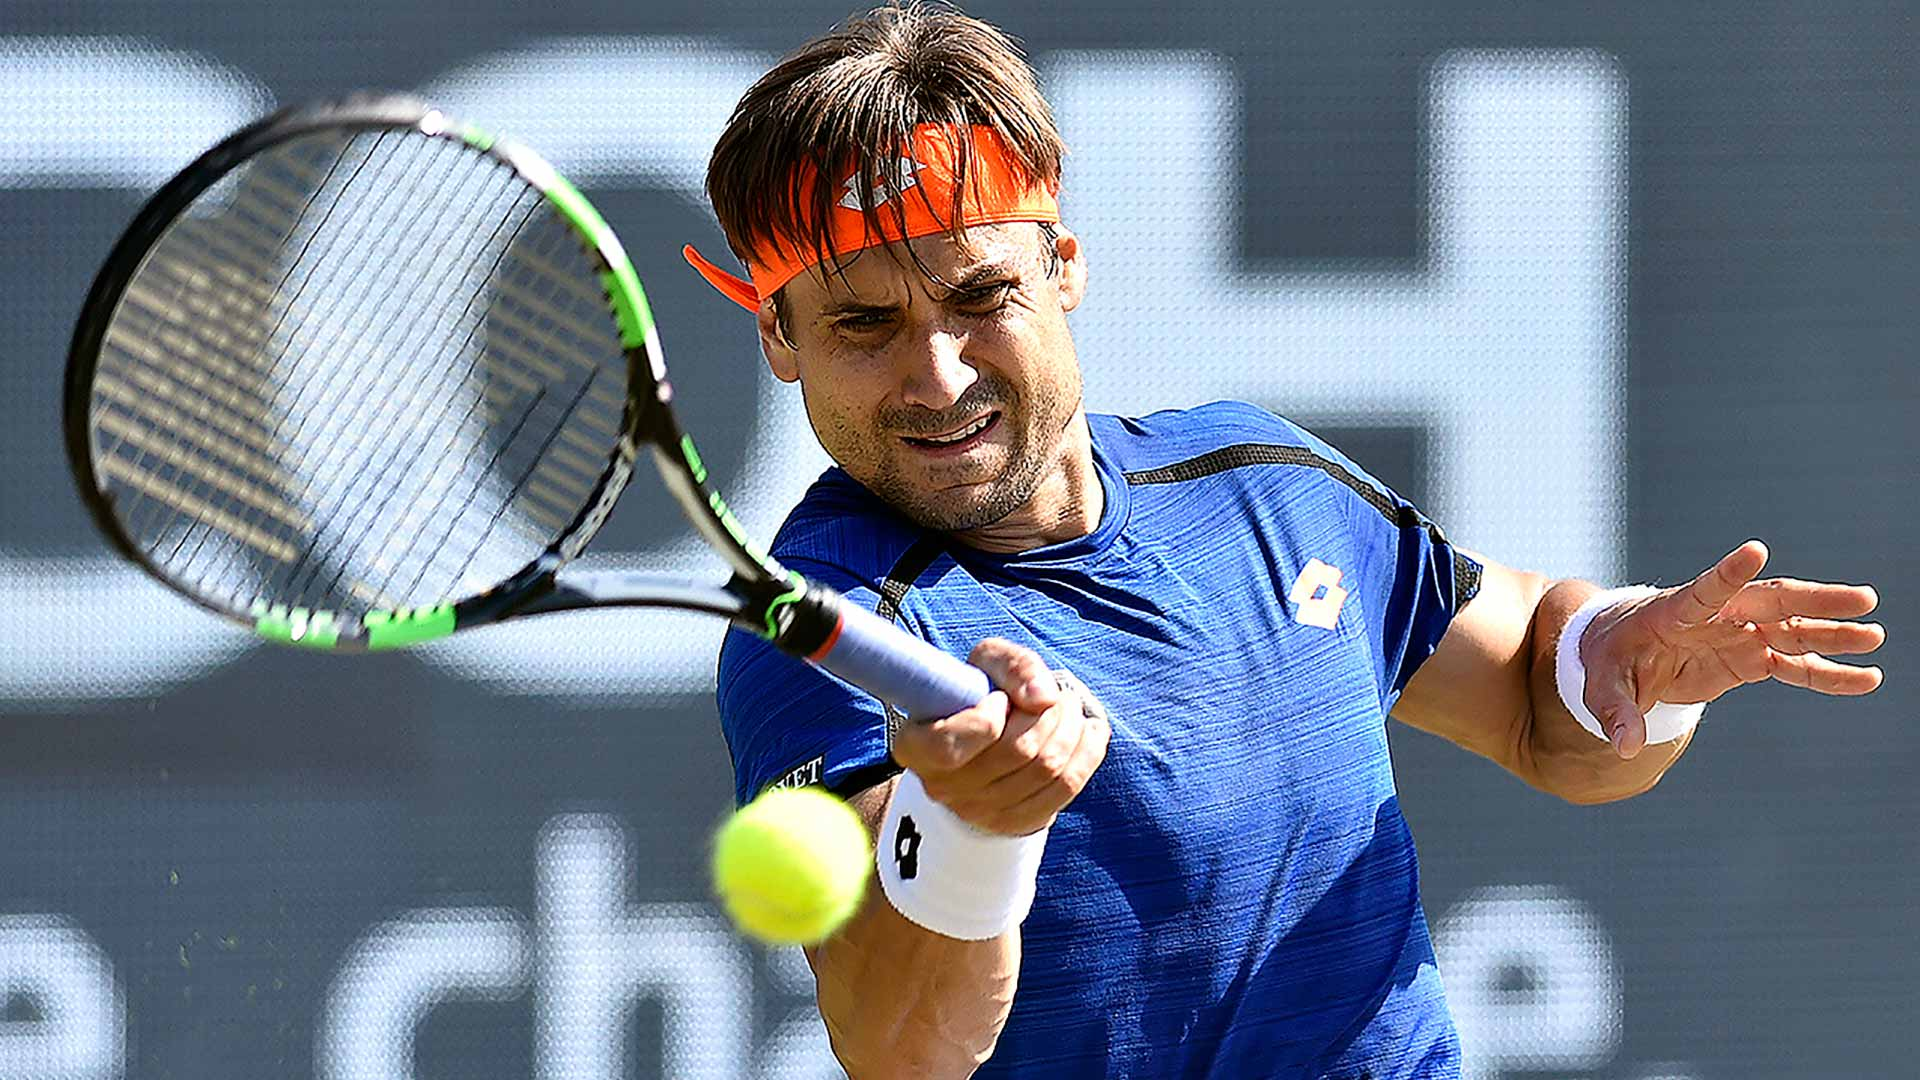 Top seed David Ferrer tops Dudi Sela in the second round.